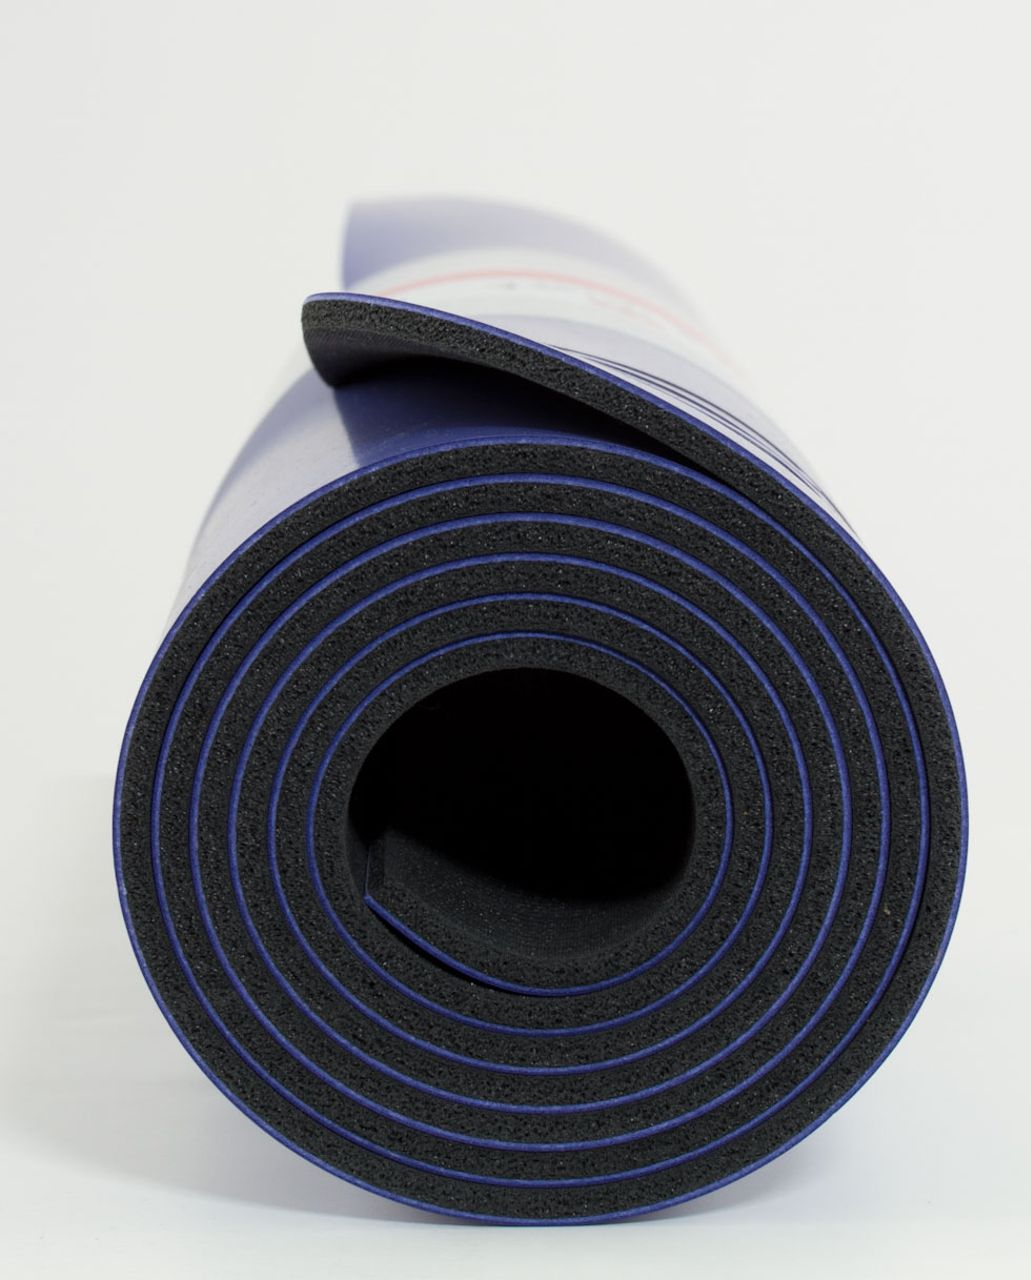 Lululemon The Mat - Persian Purple /  Deep Coal